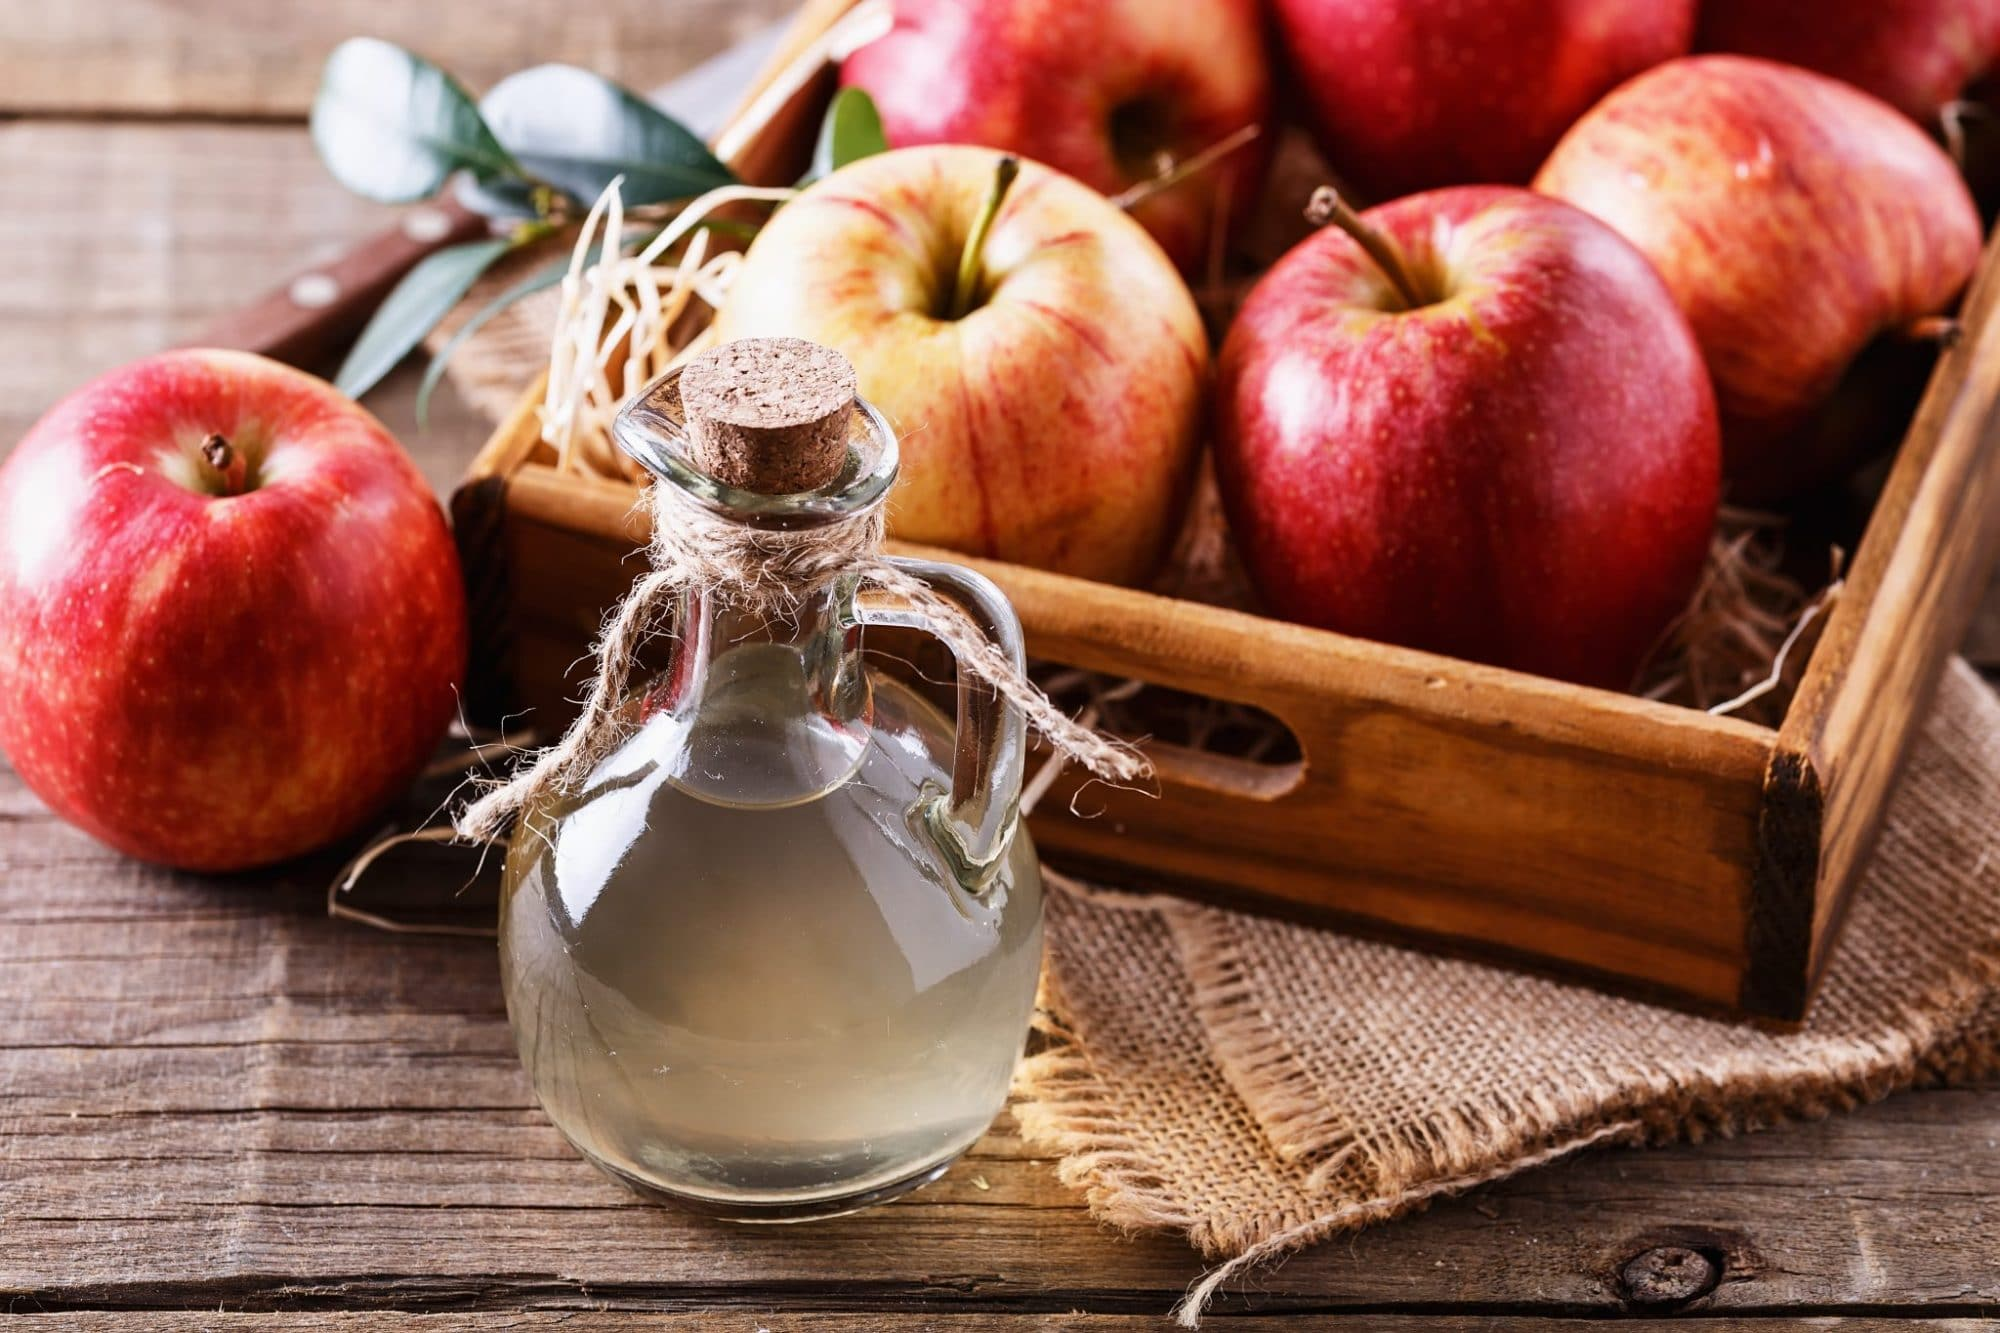 9 Benefits and Ways to Use Apple Cider Vinegar (Both In and Out of the Kitchen)